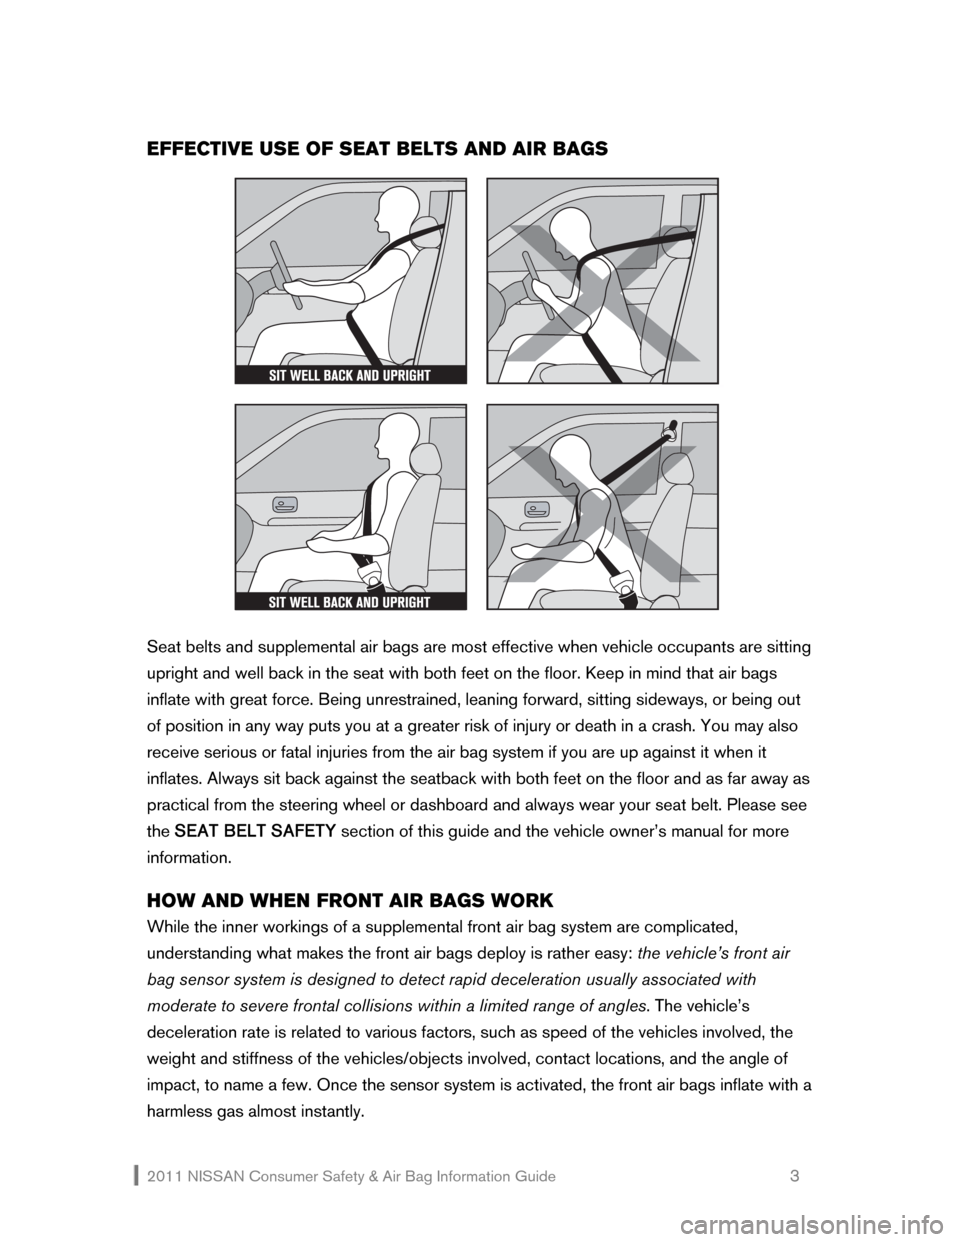 NISSAN ROGUE 2011 1.G Consumer Safety Air Bag Information Guide 2011 NISSAN Consumer Safety & Air Bag Information Guide                                                       3  EFFECTIVE USE OF SEAT BELTS AND AIR BAGS        Seat belts and supplemental air bags ar